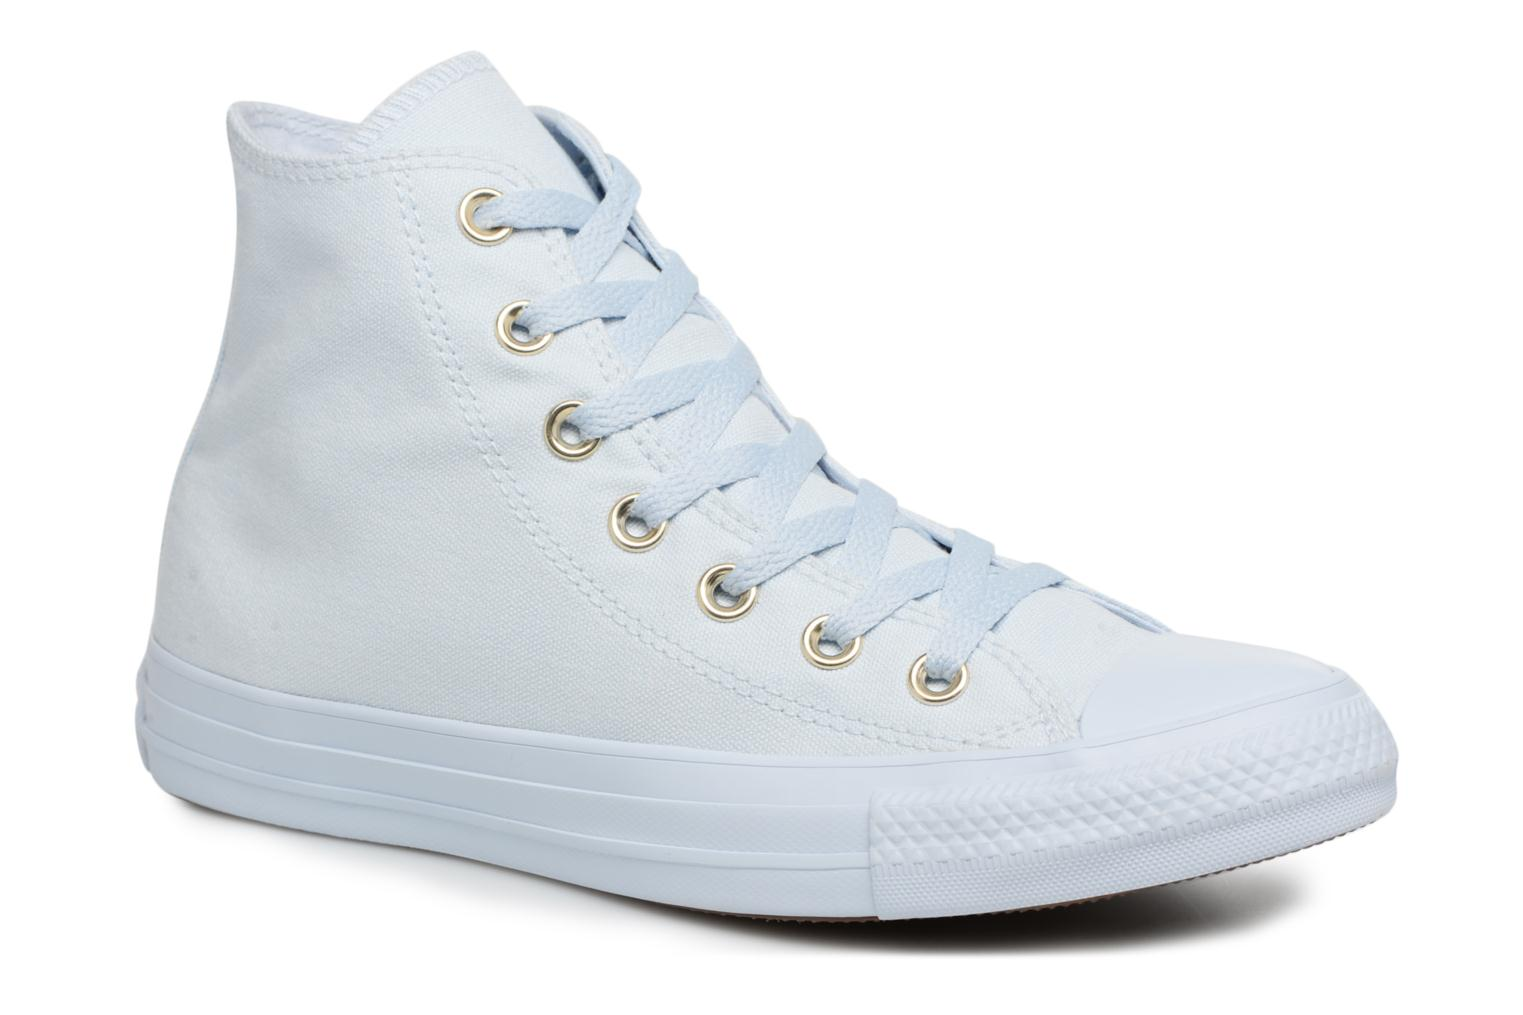 converse chuck taylor all star glam hi